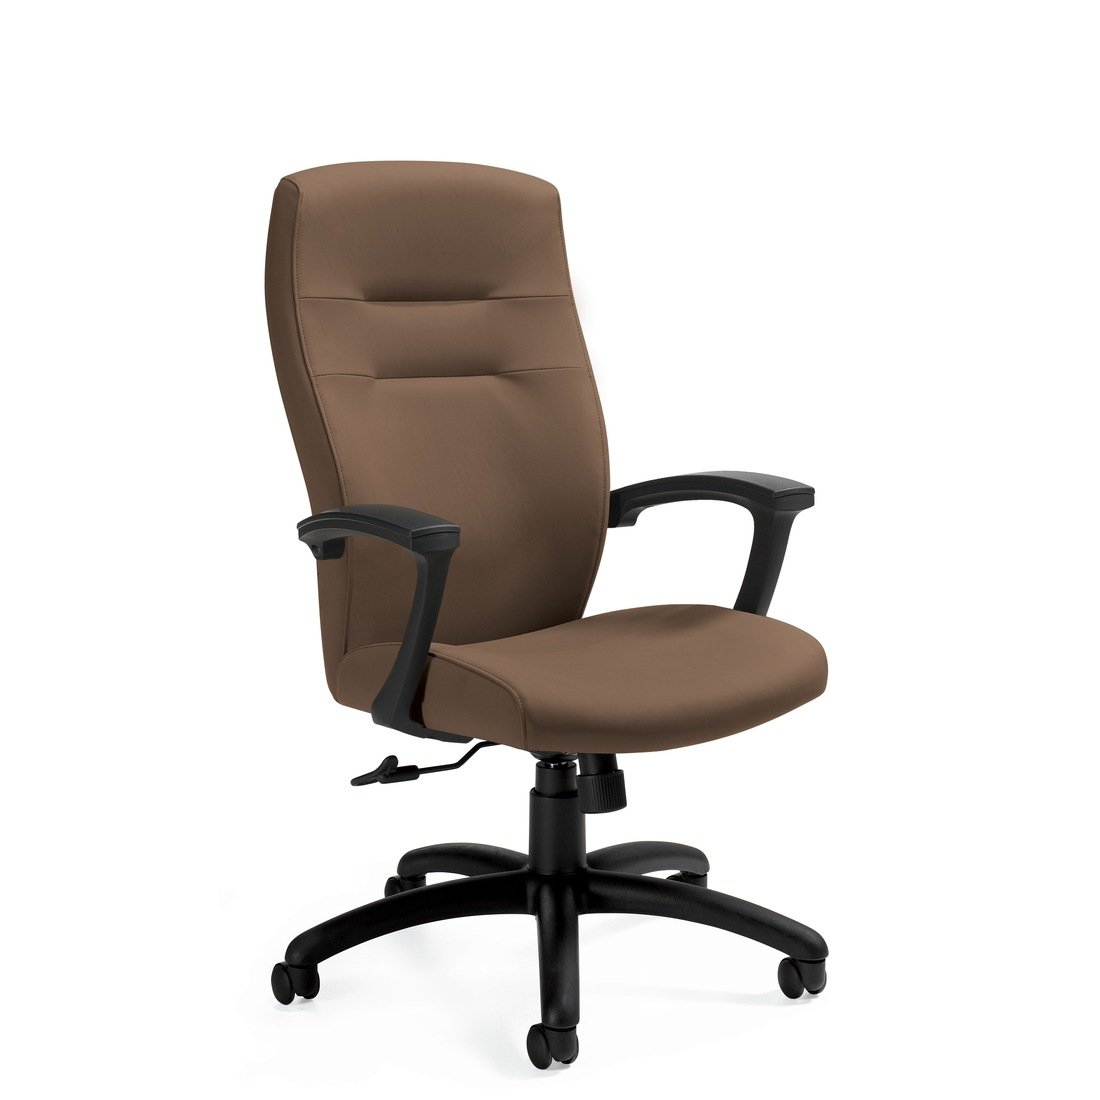 Synopsis high back tilter chair, model 5090LM-4 . This chair has been placed on a white background.